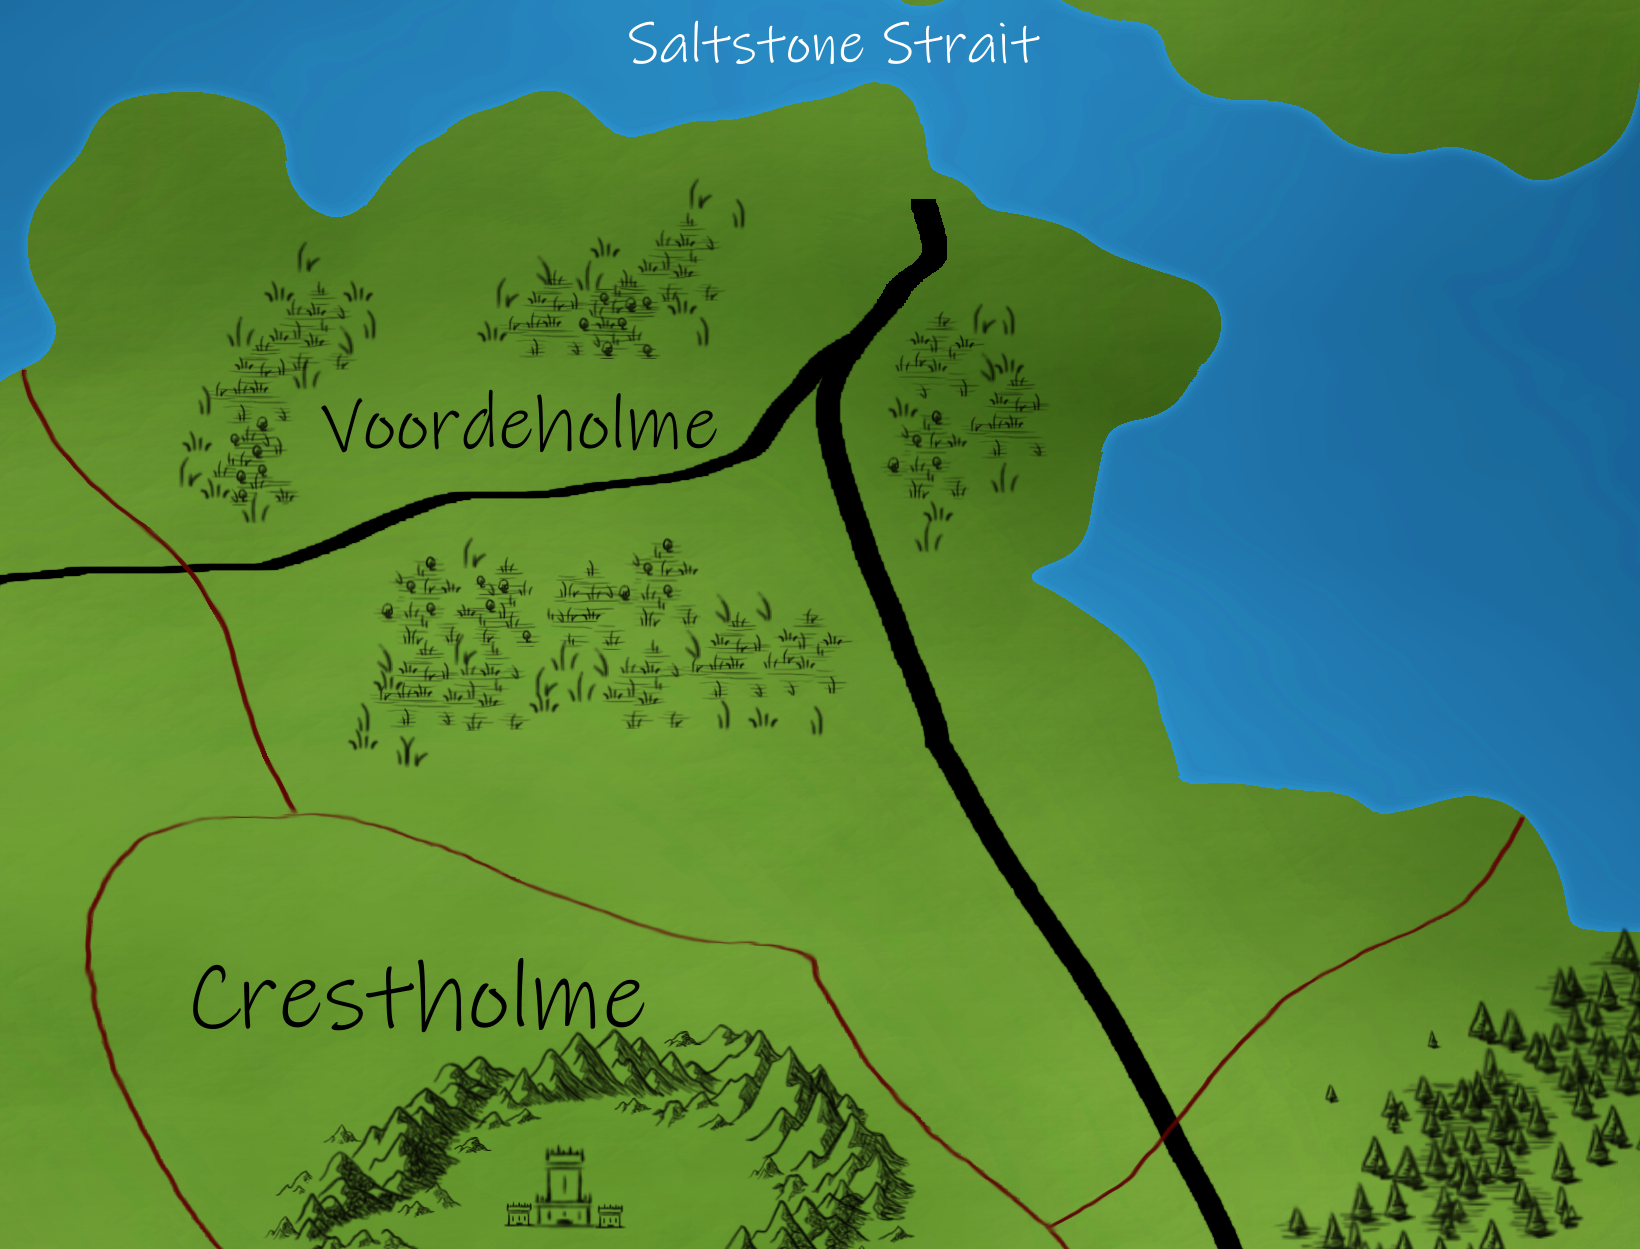 Voordeholme   The Northernmost duchy known for its warm weather and abundant agriculture.